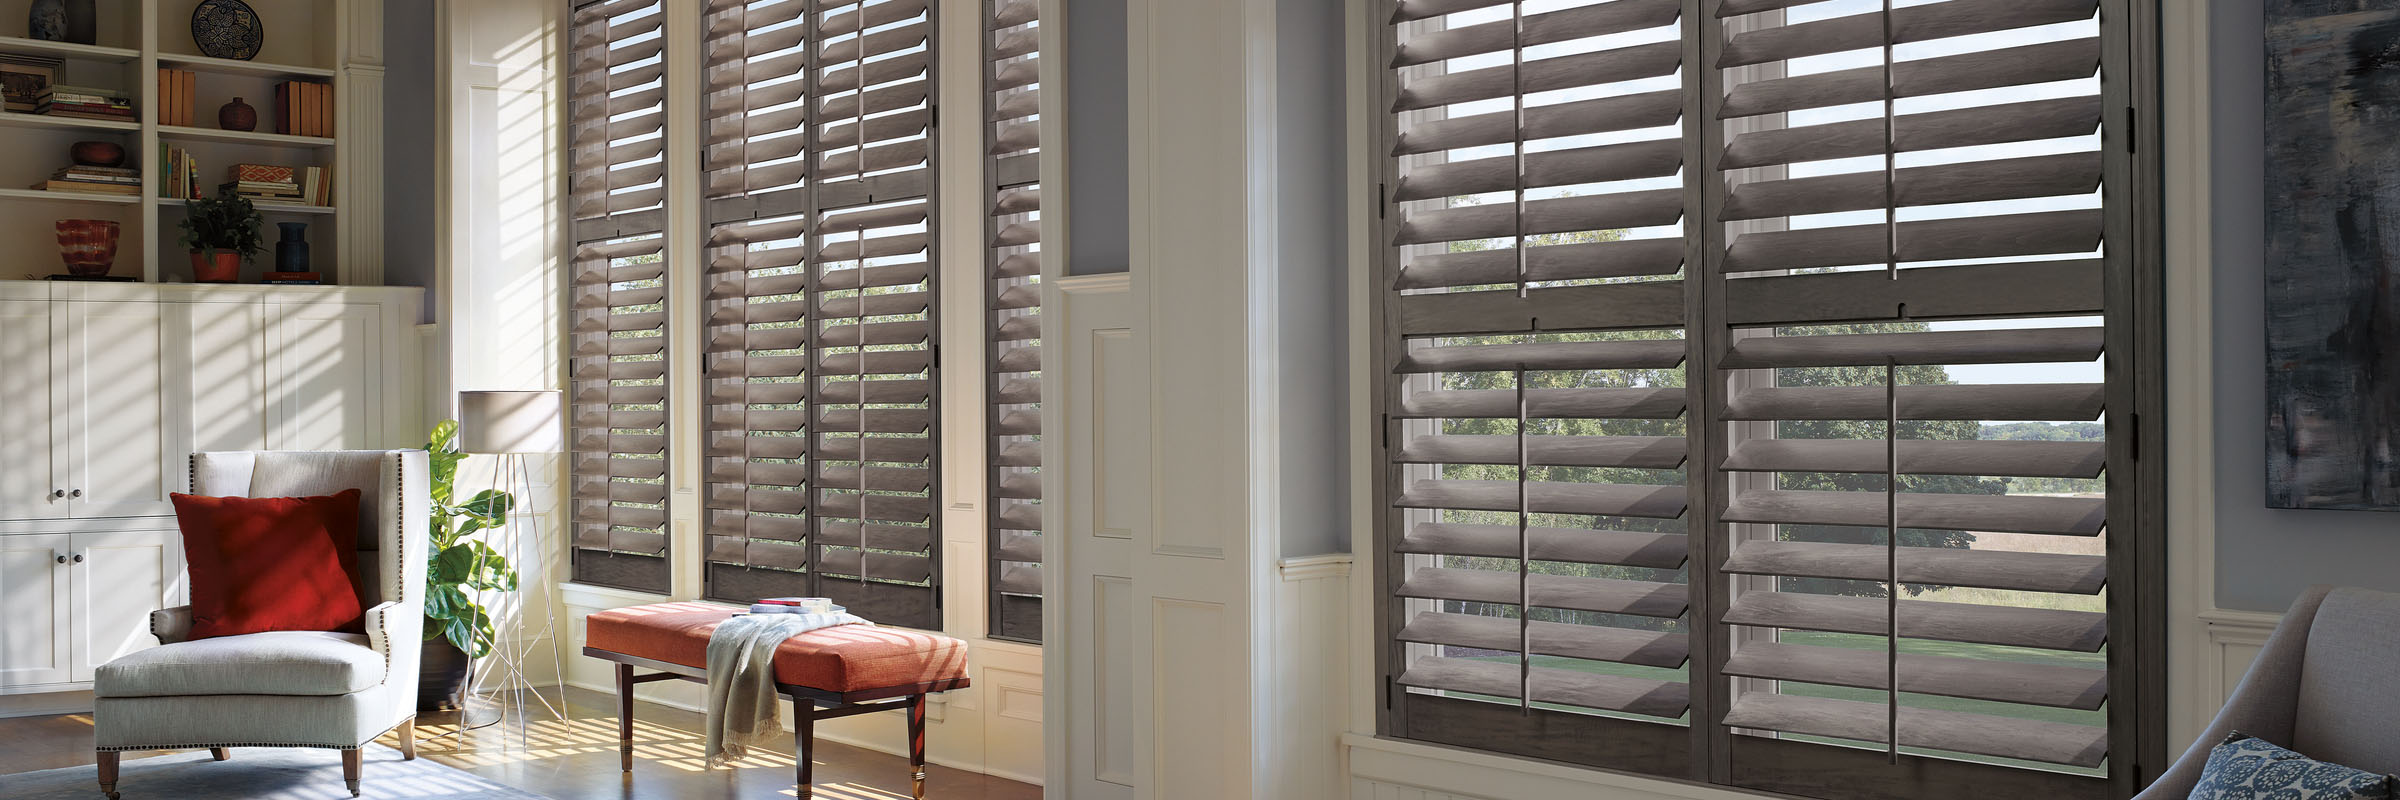 Interior Shutters In Hardwood Salt And Pepper   Heritance ...